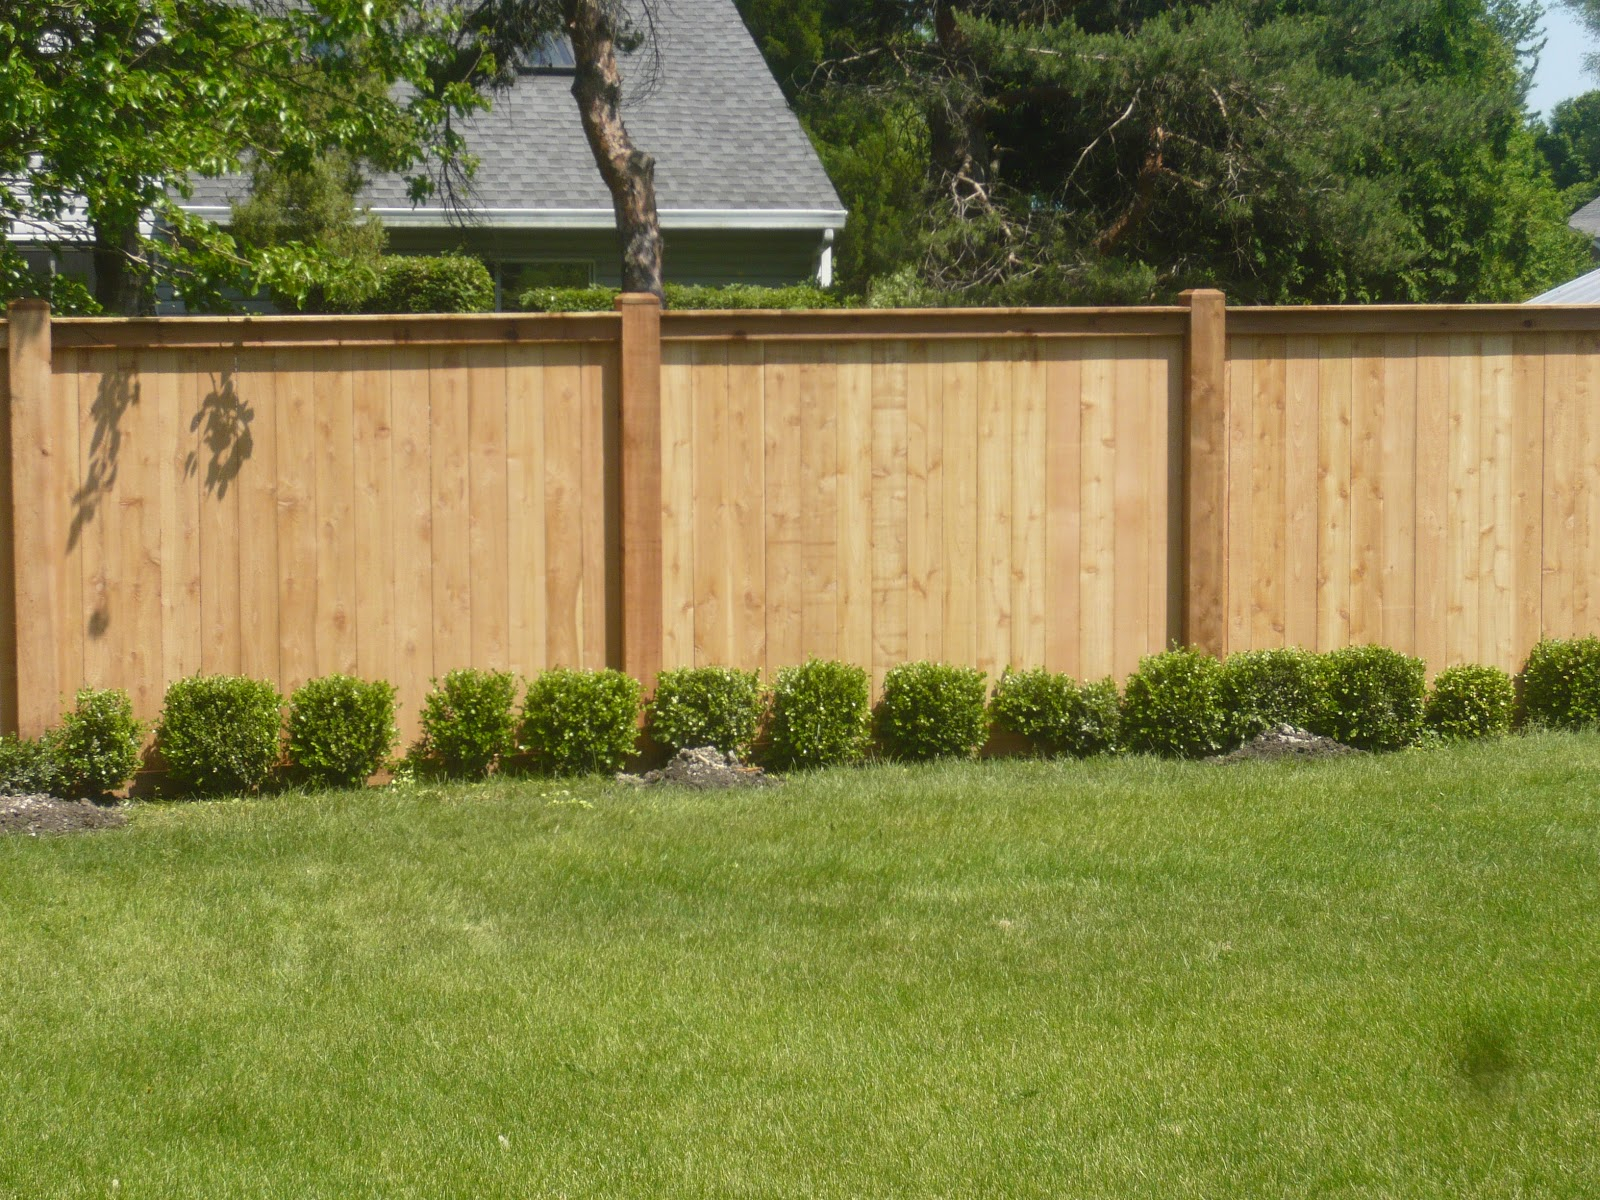 Types Of Backyard Fence Ideas Fence And Gate Ideas regarding 13 Genius Concepts of How to Build Types Of Backyard Fences